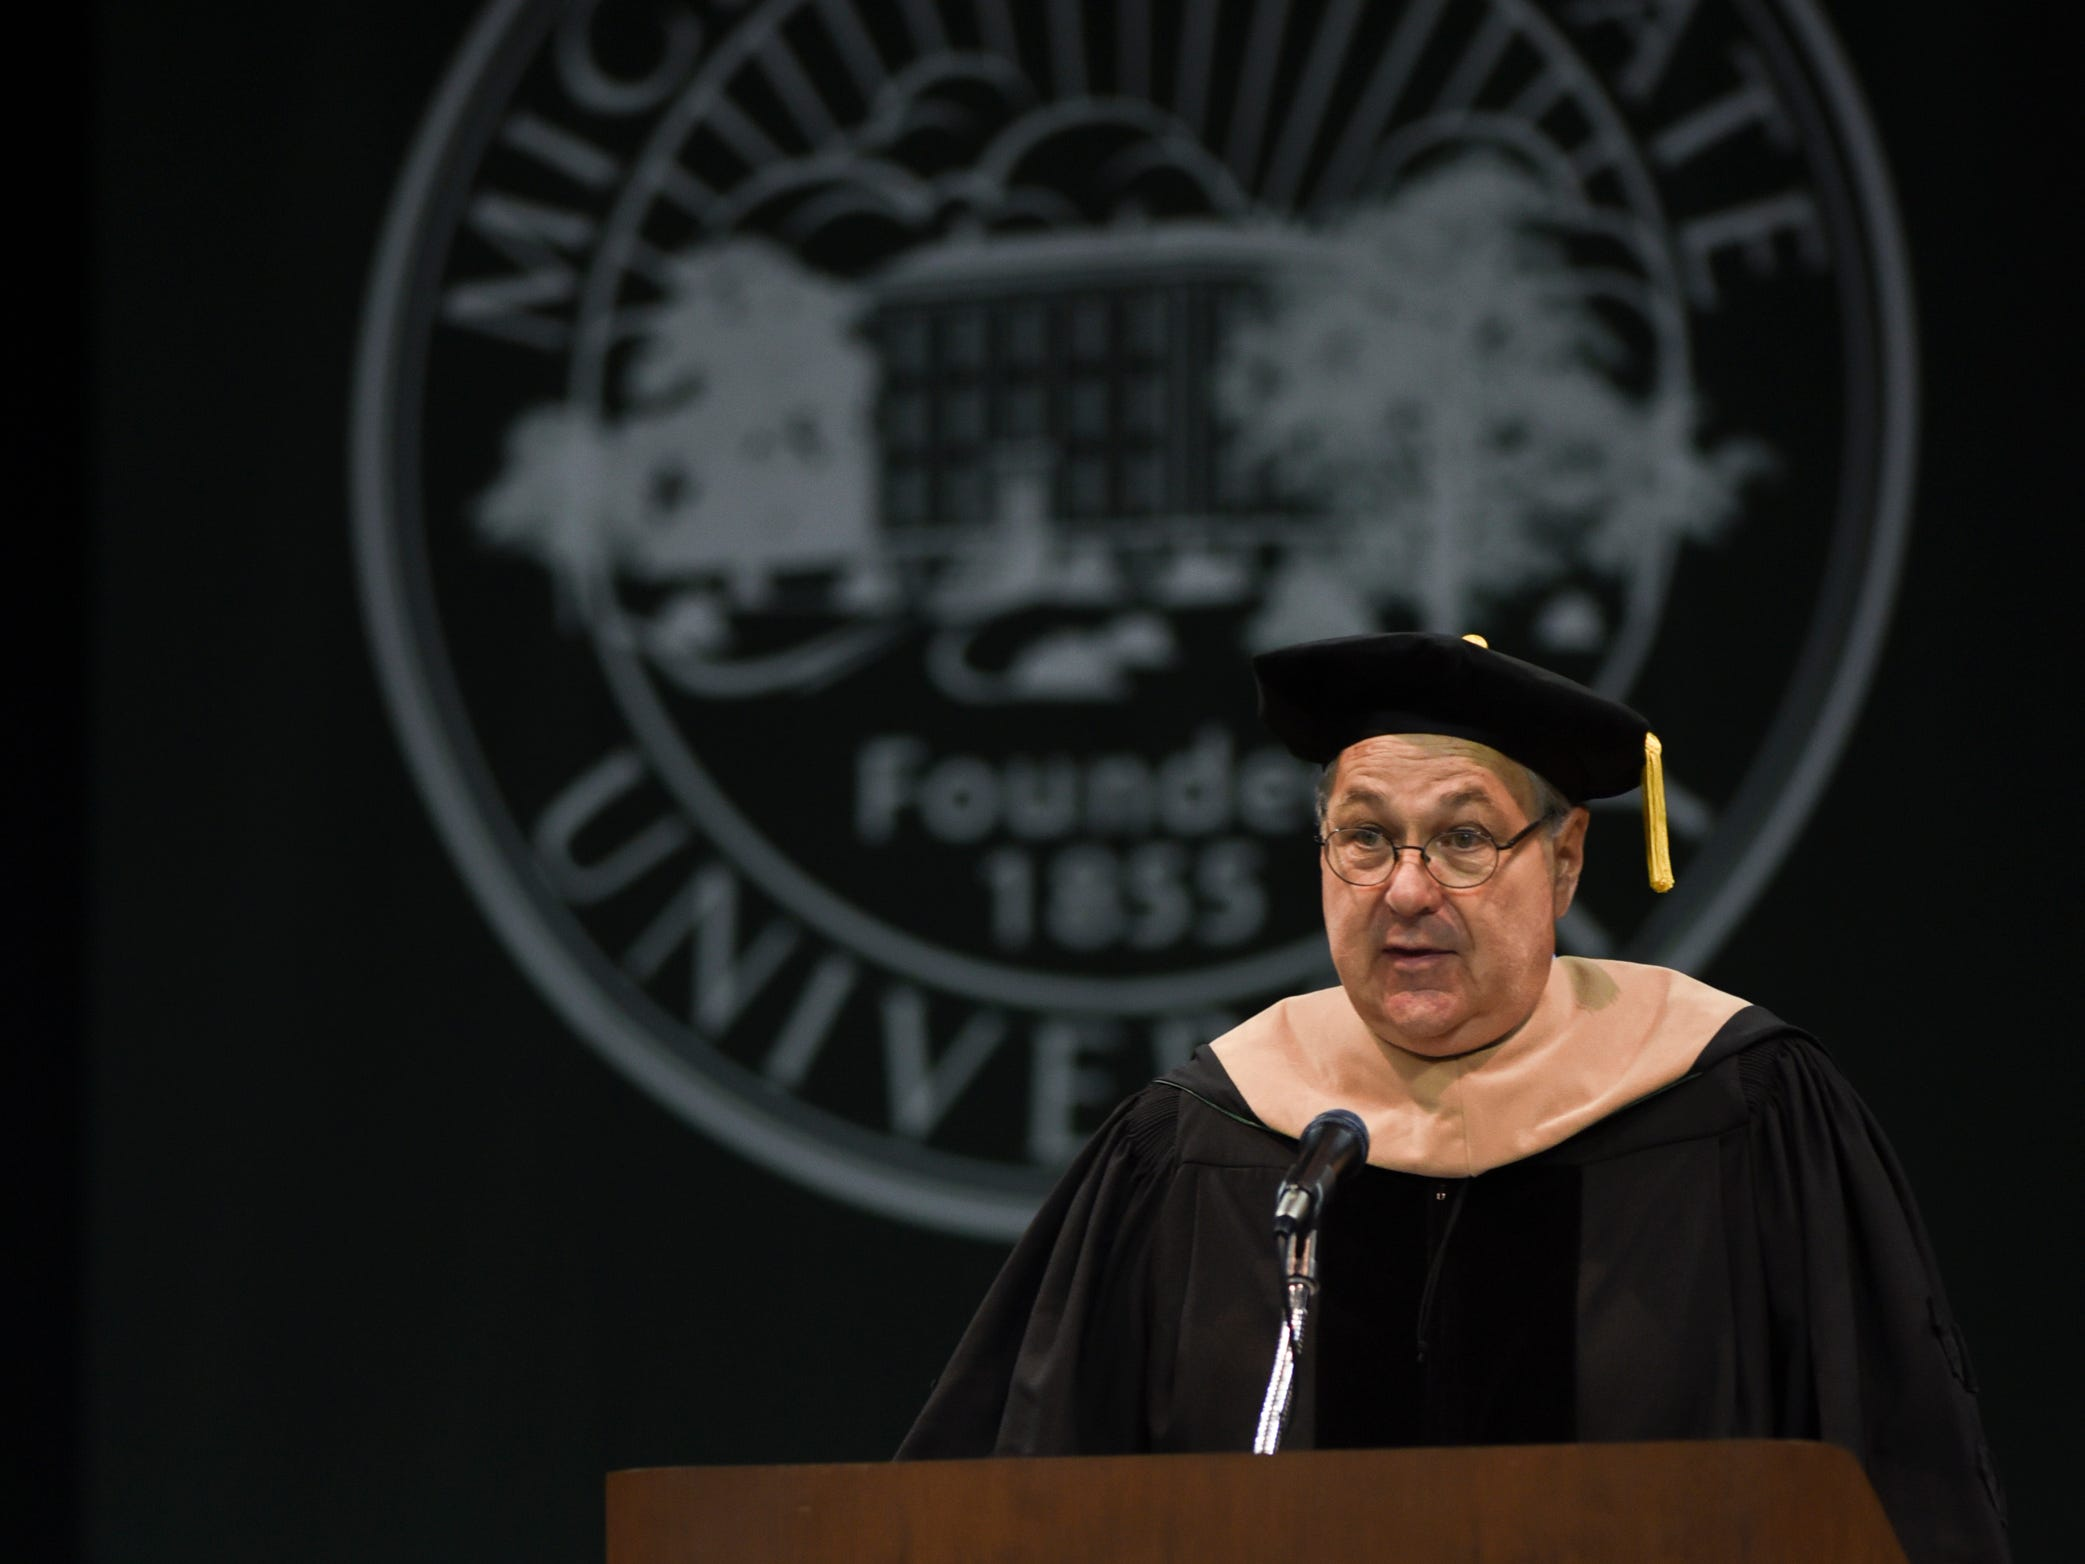 Bill Demmer, CEO of Demmer Holdings Inc., addresses Michigan State University graduates Friday, May 3, 2019, during commencement.  Demmer received an honorary degree of Doctor of Business from MSU.